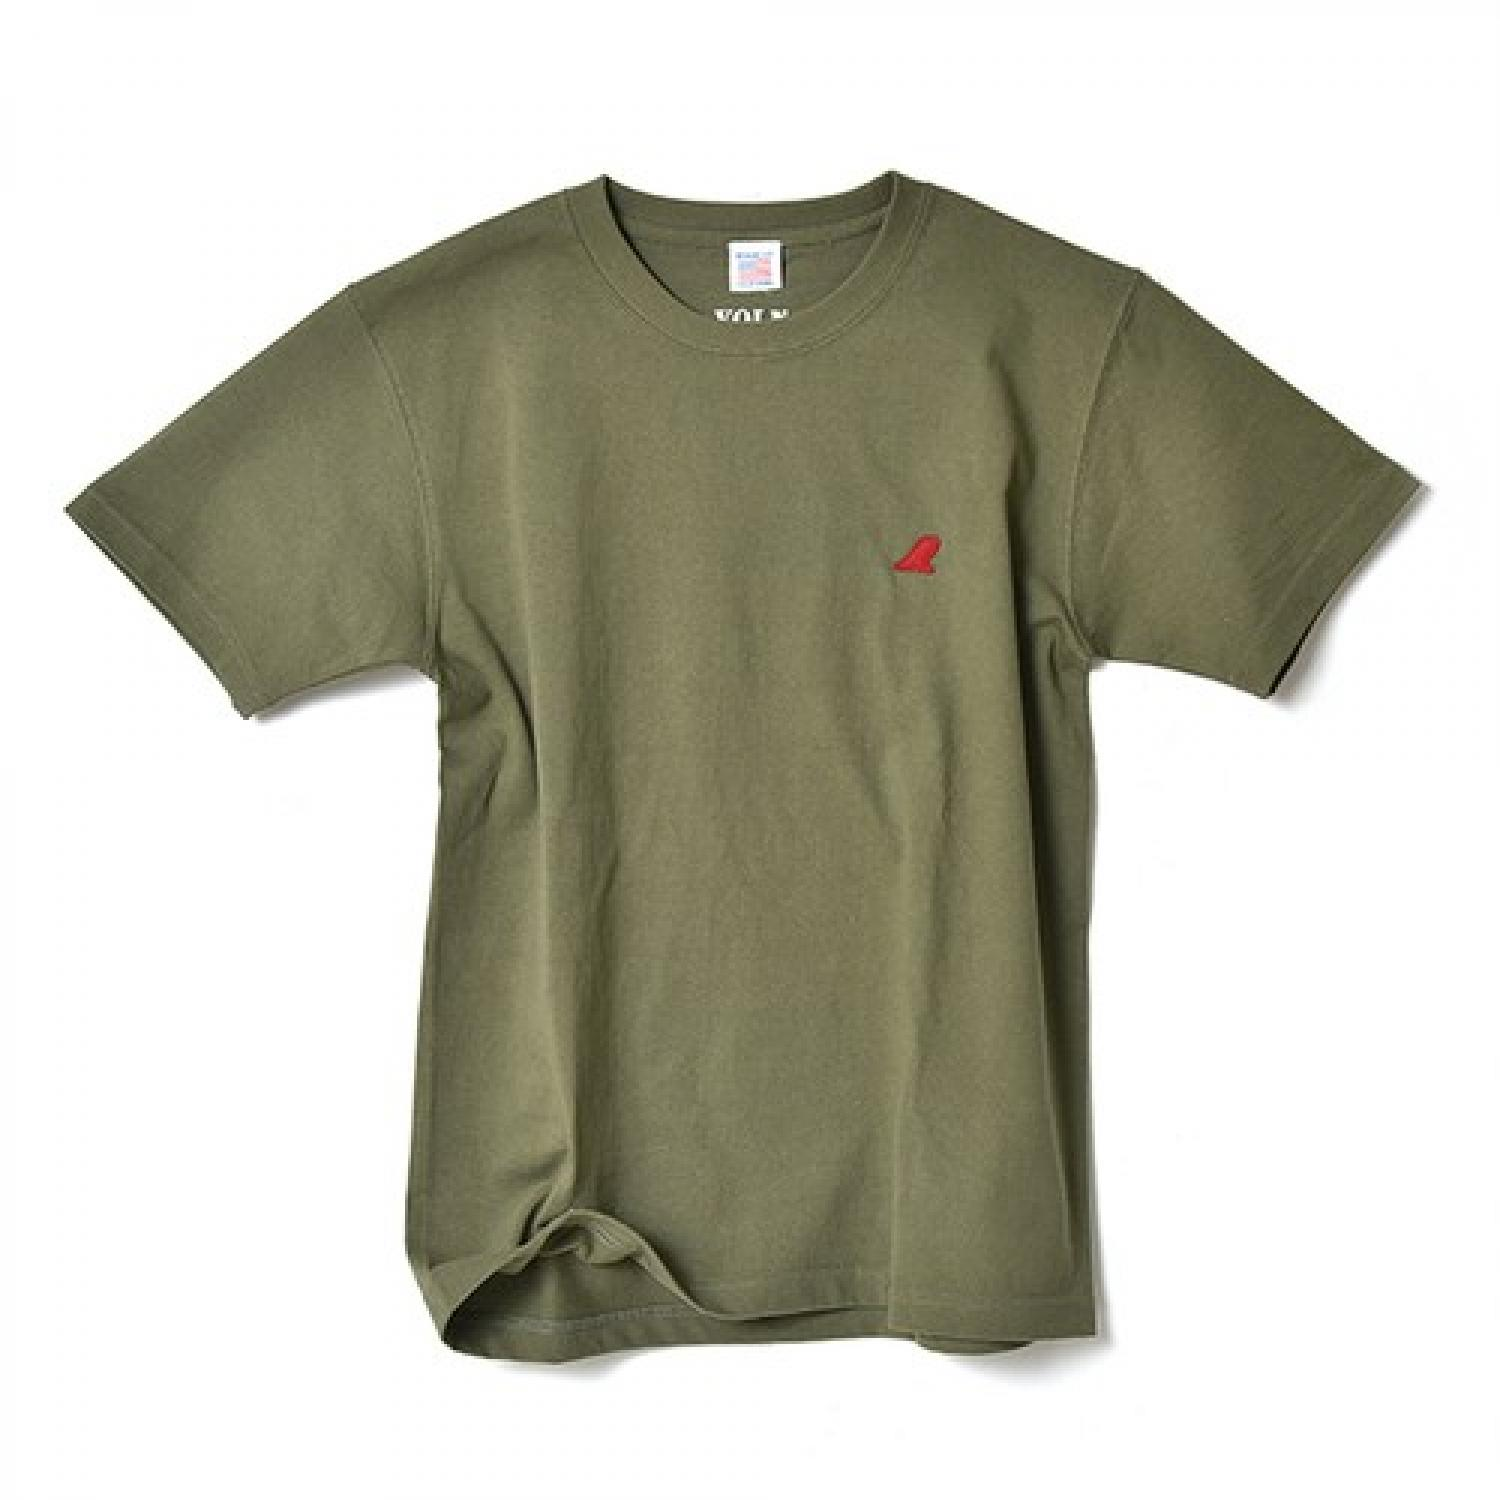 VOLN CREW NECK T-SHIRT  RED FIN  OLIVE